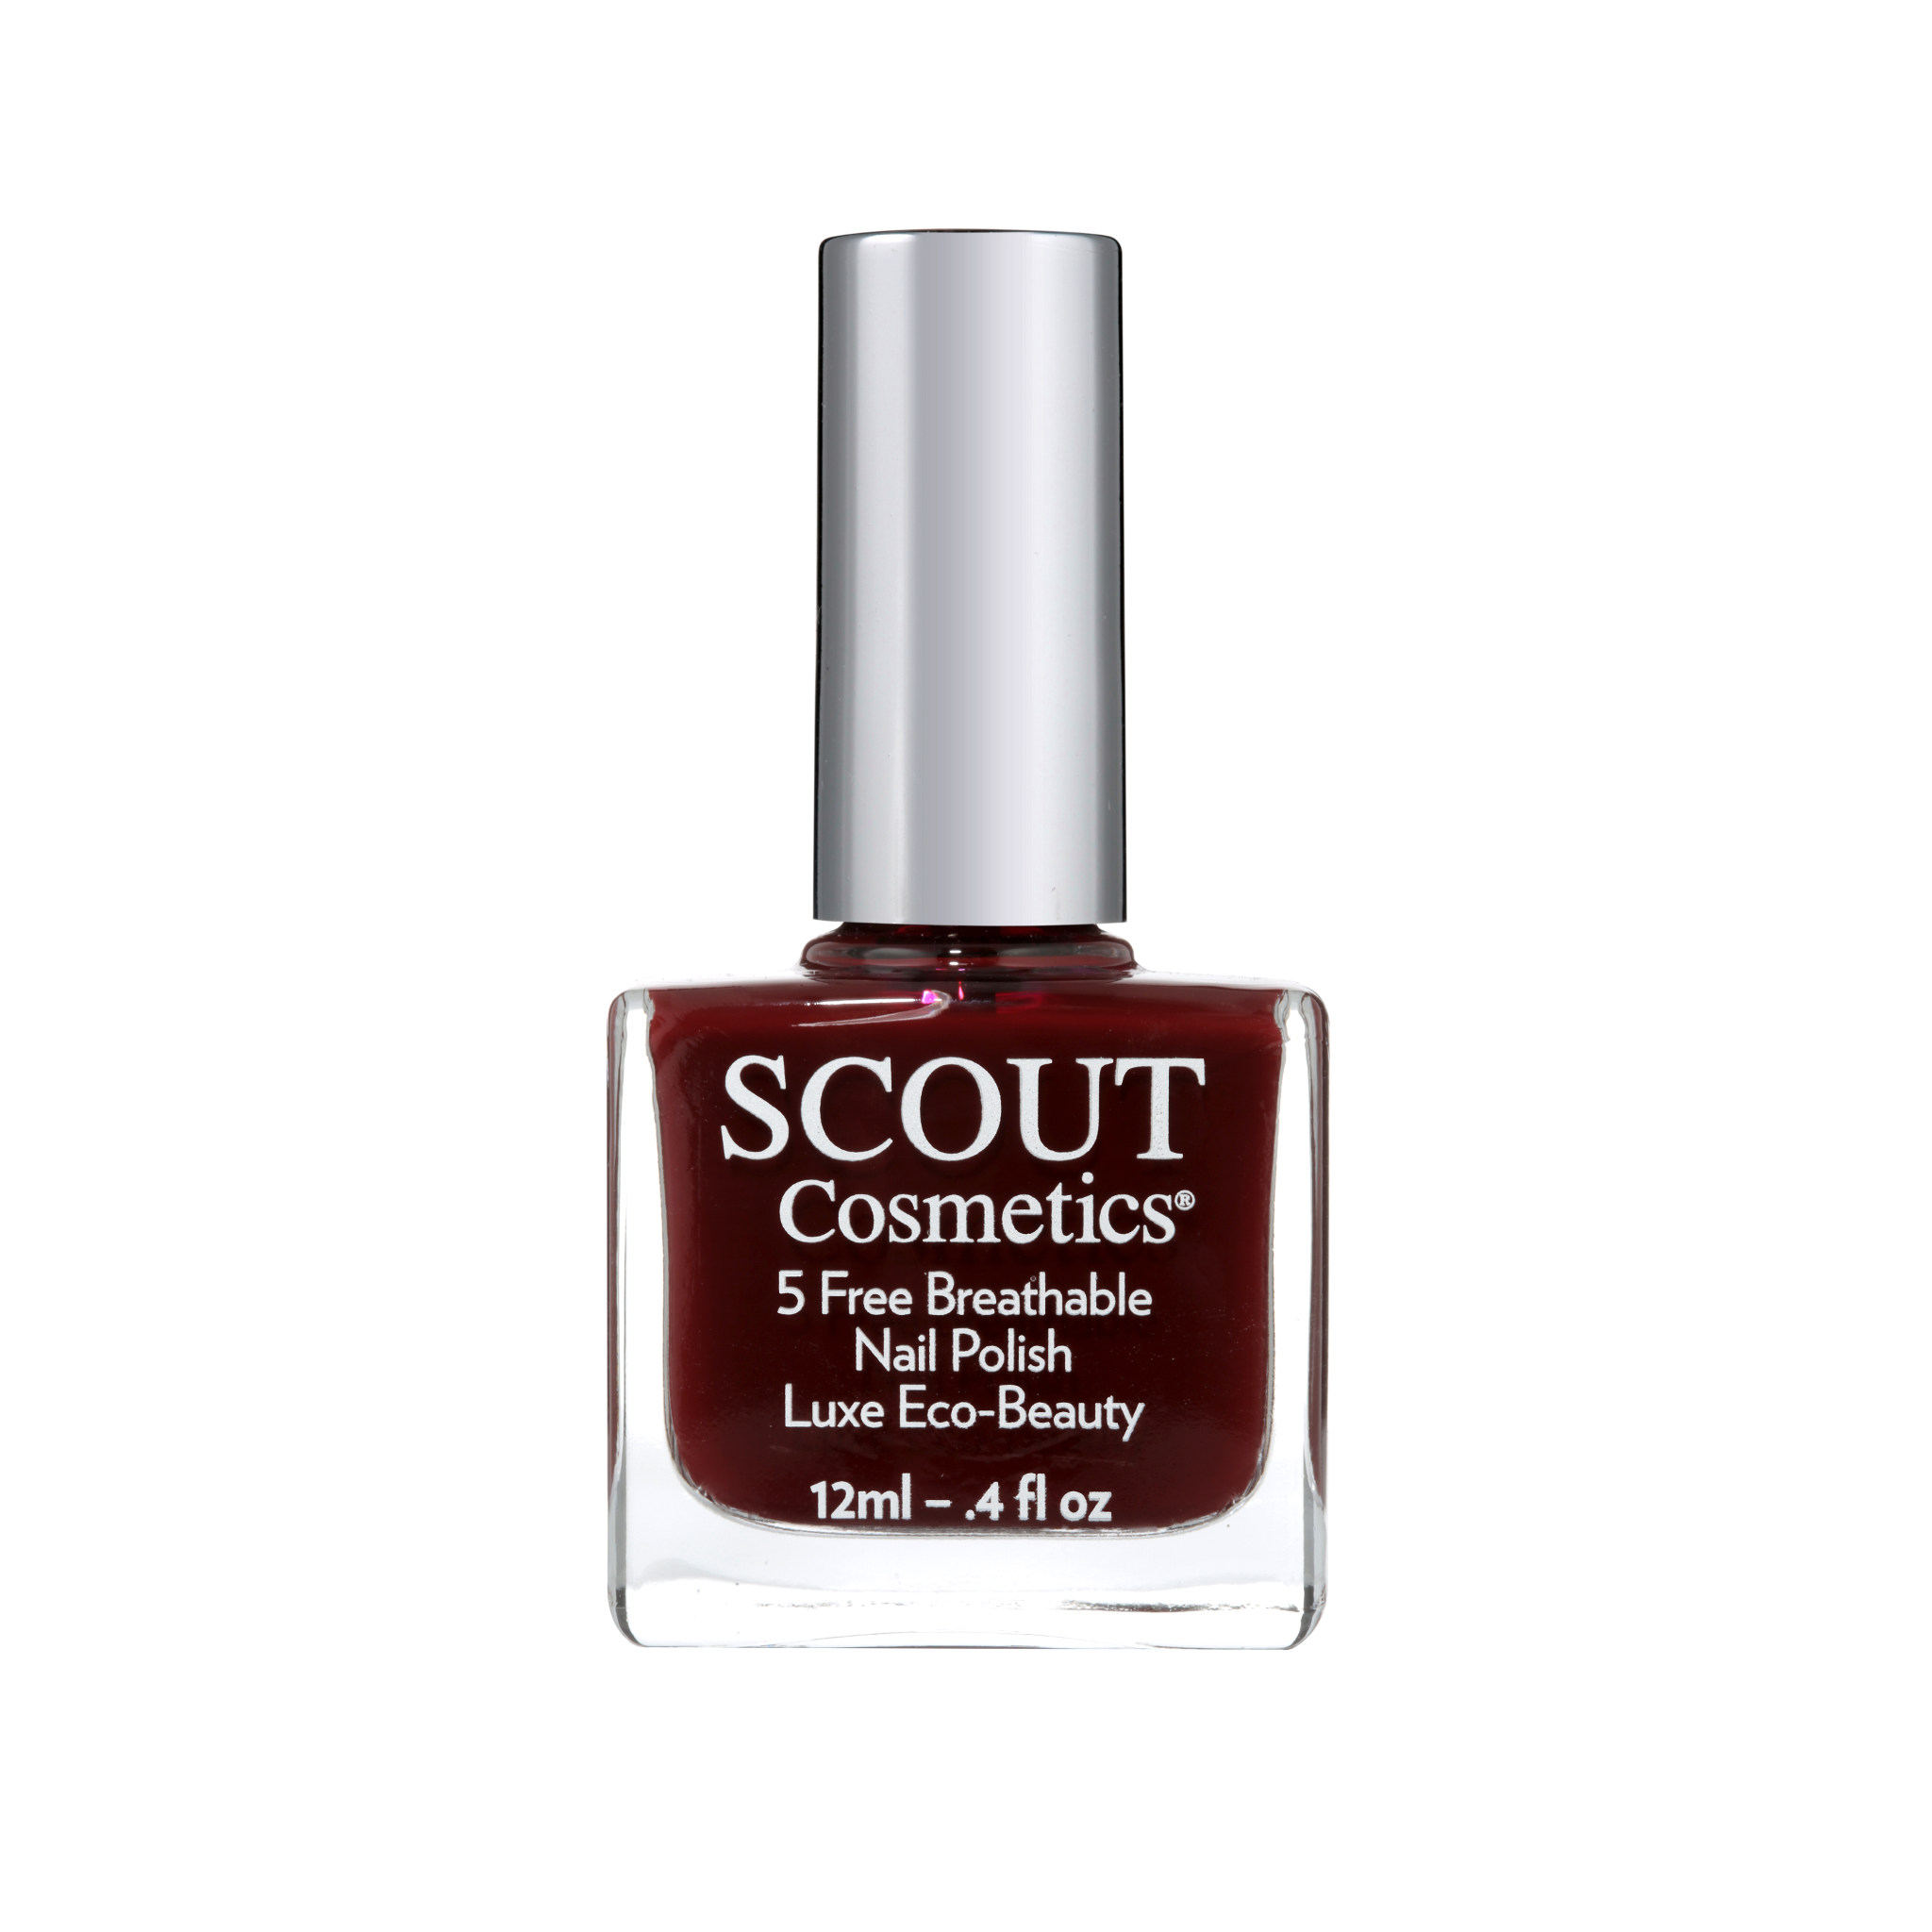 SCOUT Cosmetics Nail Polish - Eternal Flame